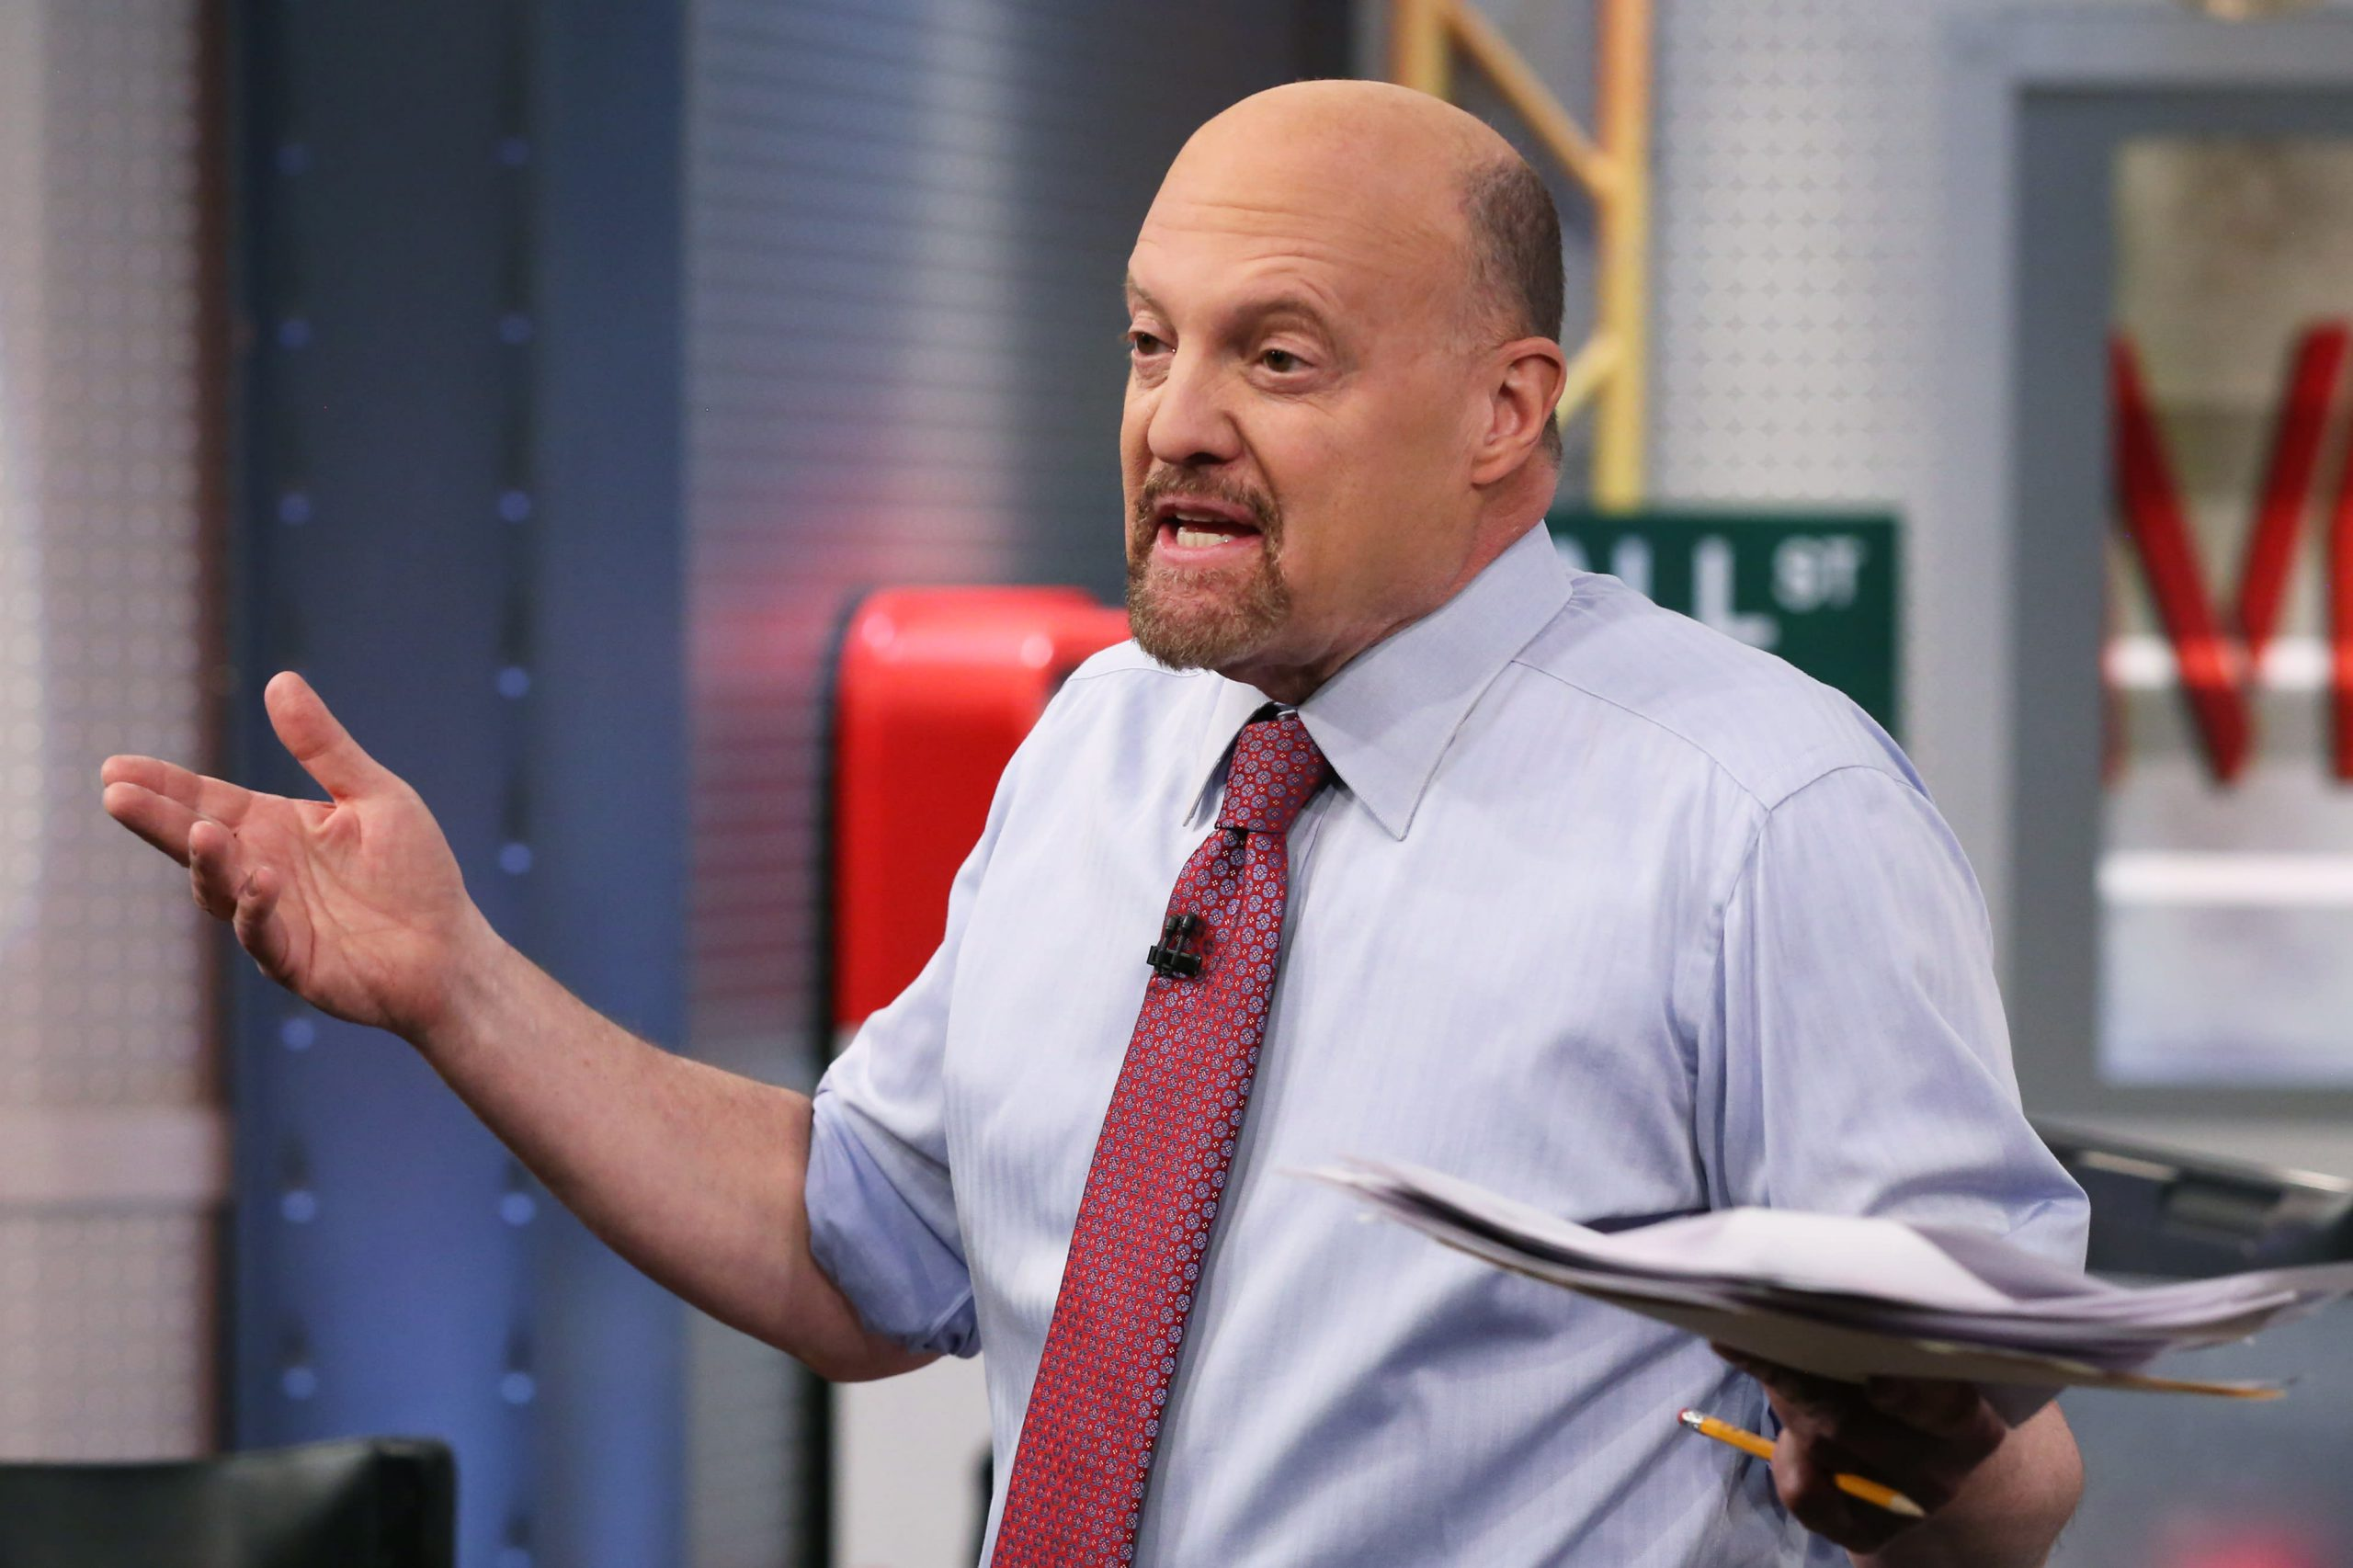 Everything Jim Cramer said about the stock market on 'Mad Money,' including Apple's quarter, Tesla's high expectations, Masimo CEO